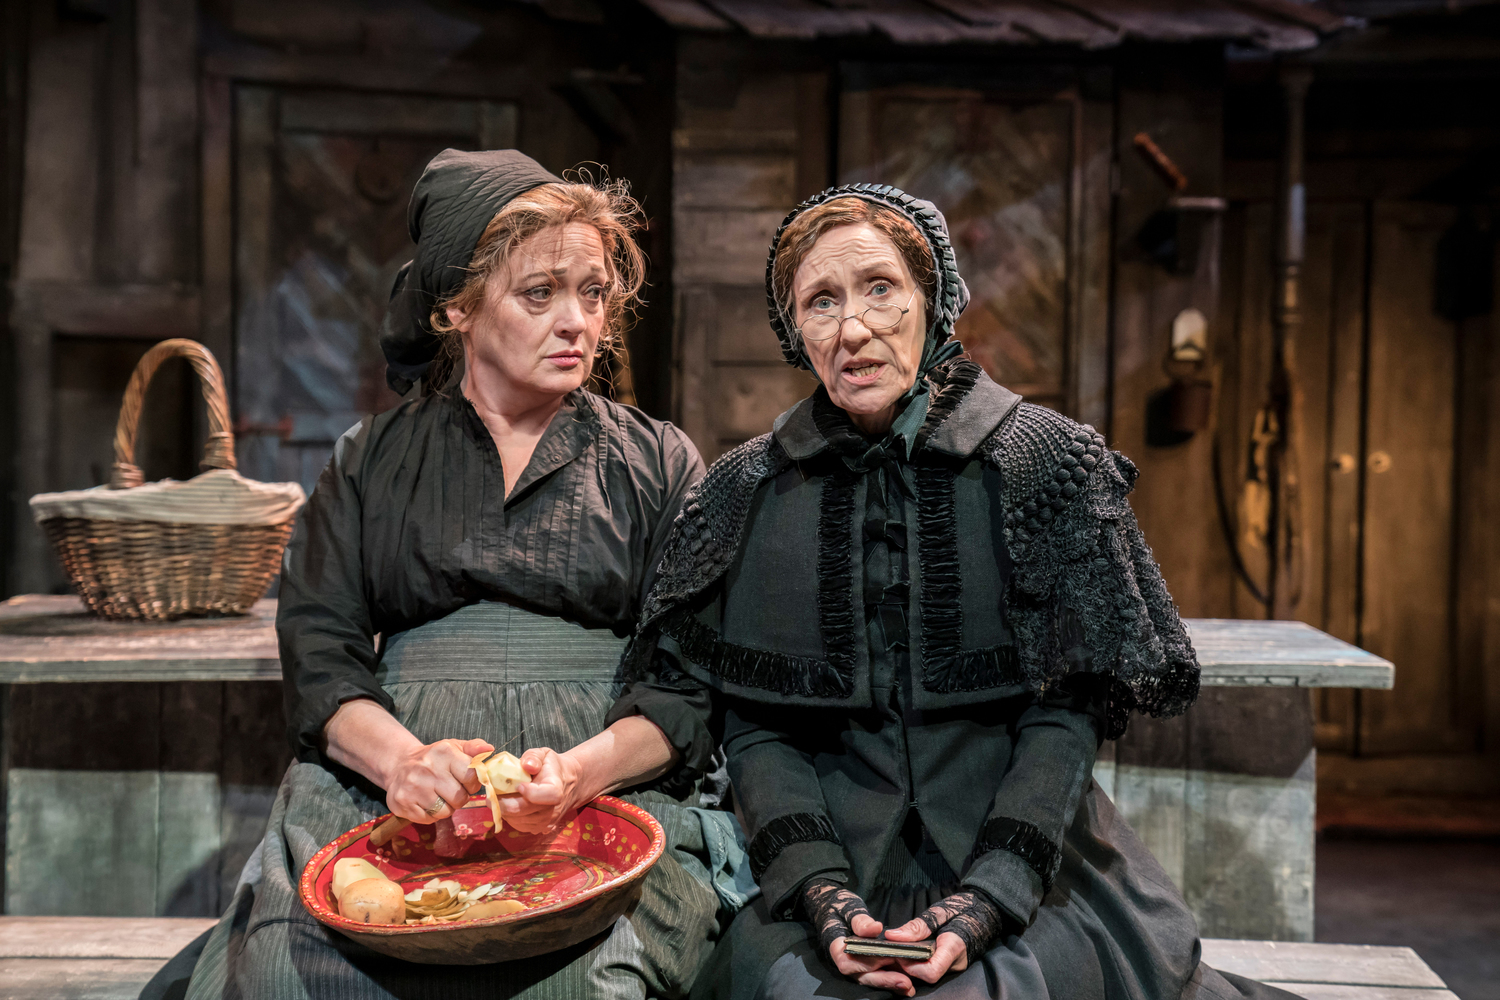 BWW Review: FIDDLER ON THE ROOF, Playhouse Theatre